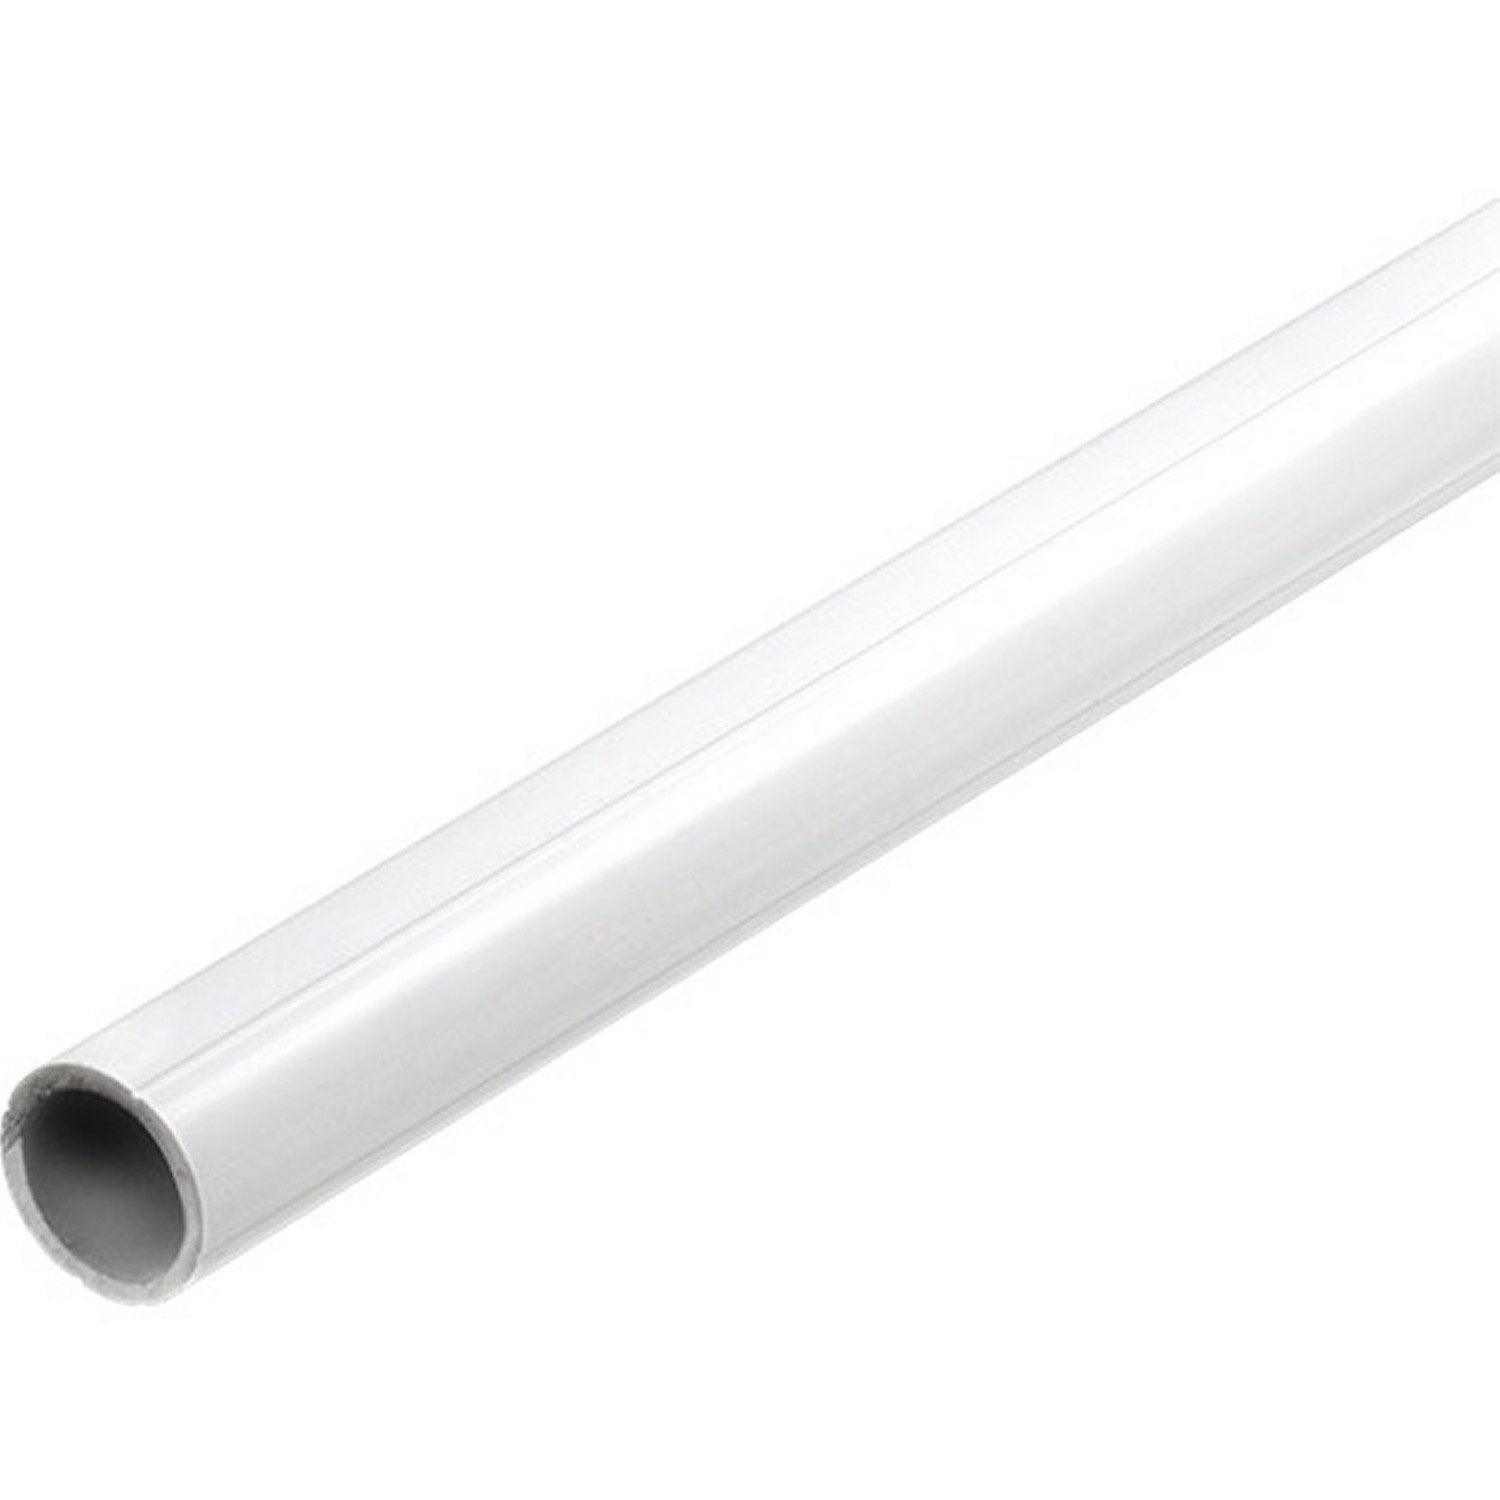 Tube rond rainur en pvc mat l1m x for Tube pvc 100 diametre interieur